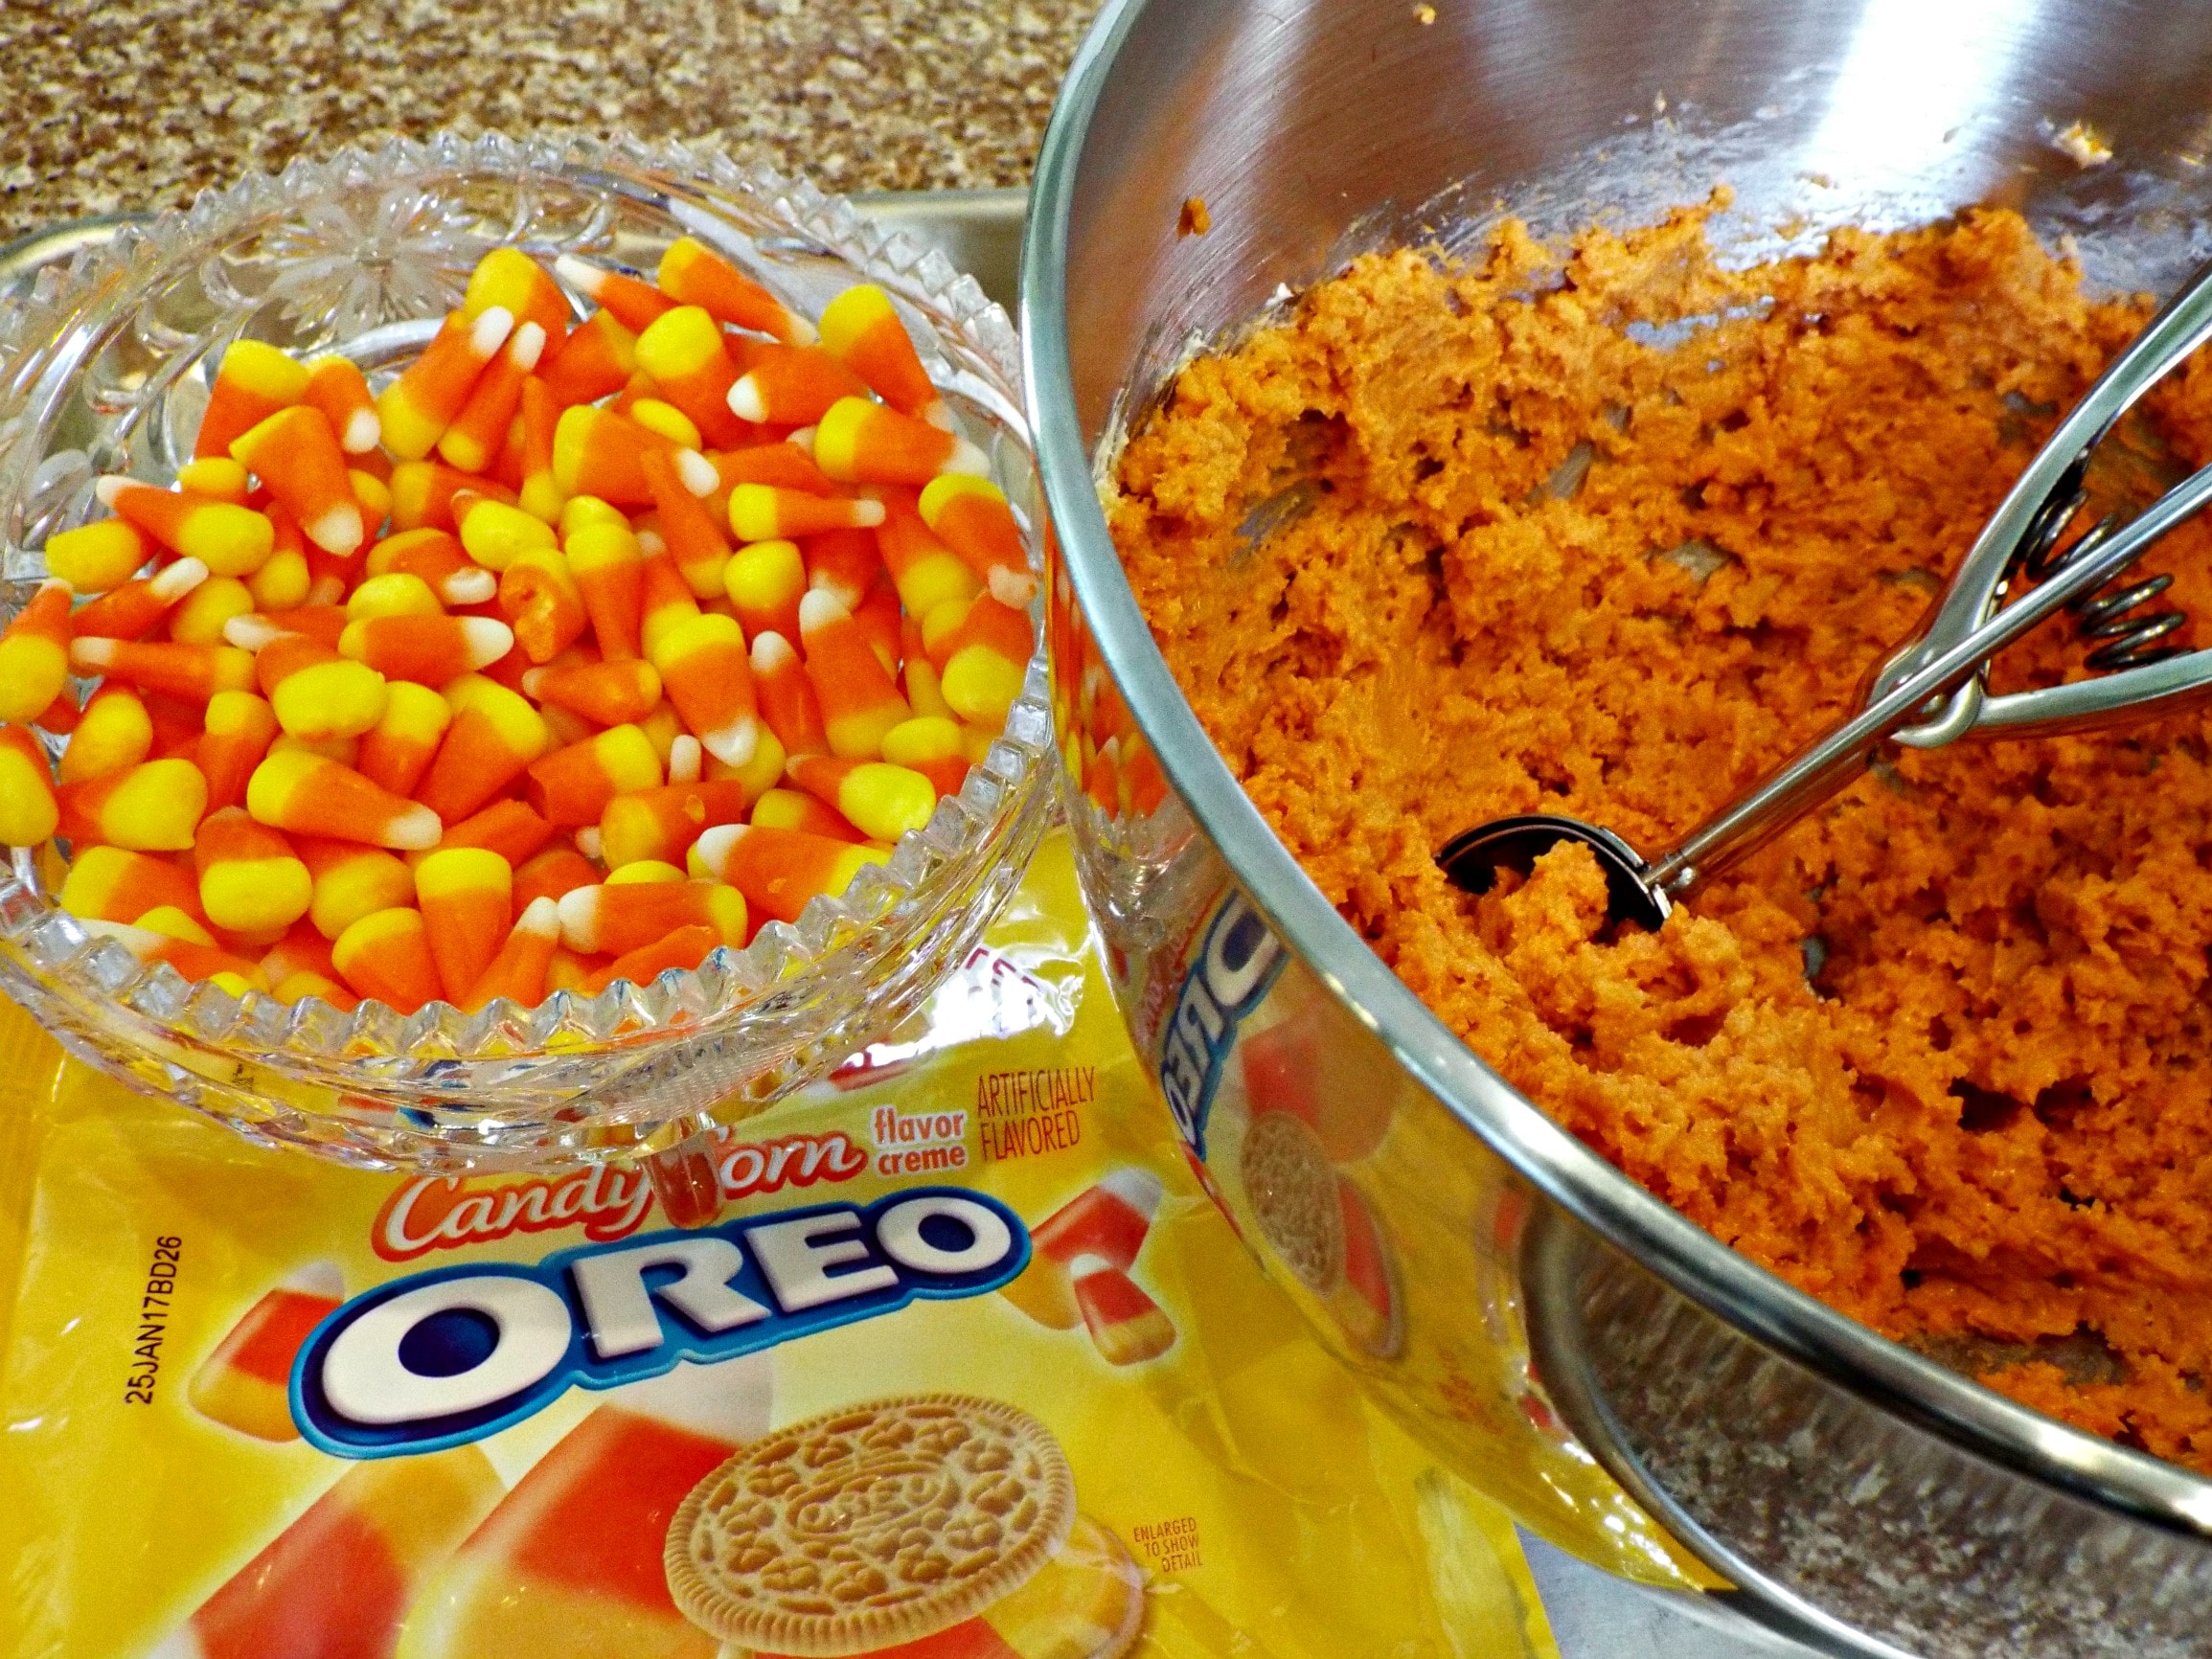 candy-corn-oreo-cookie-mix-f